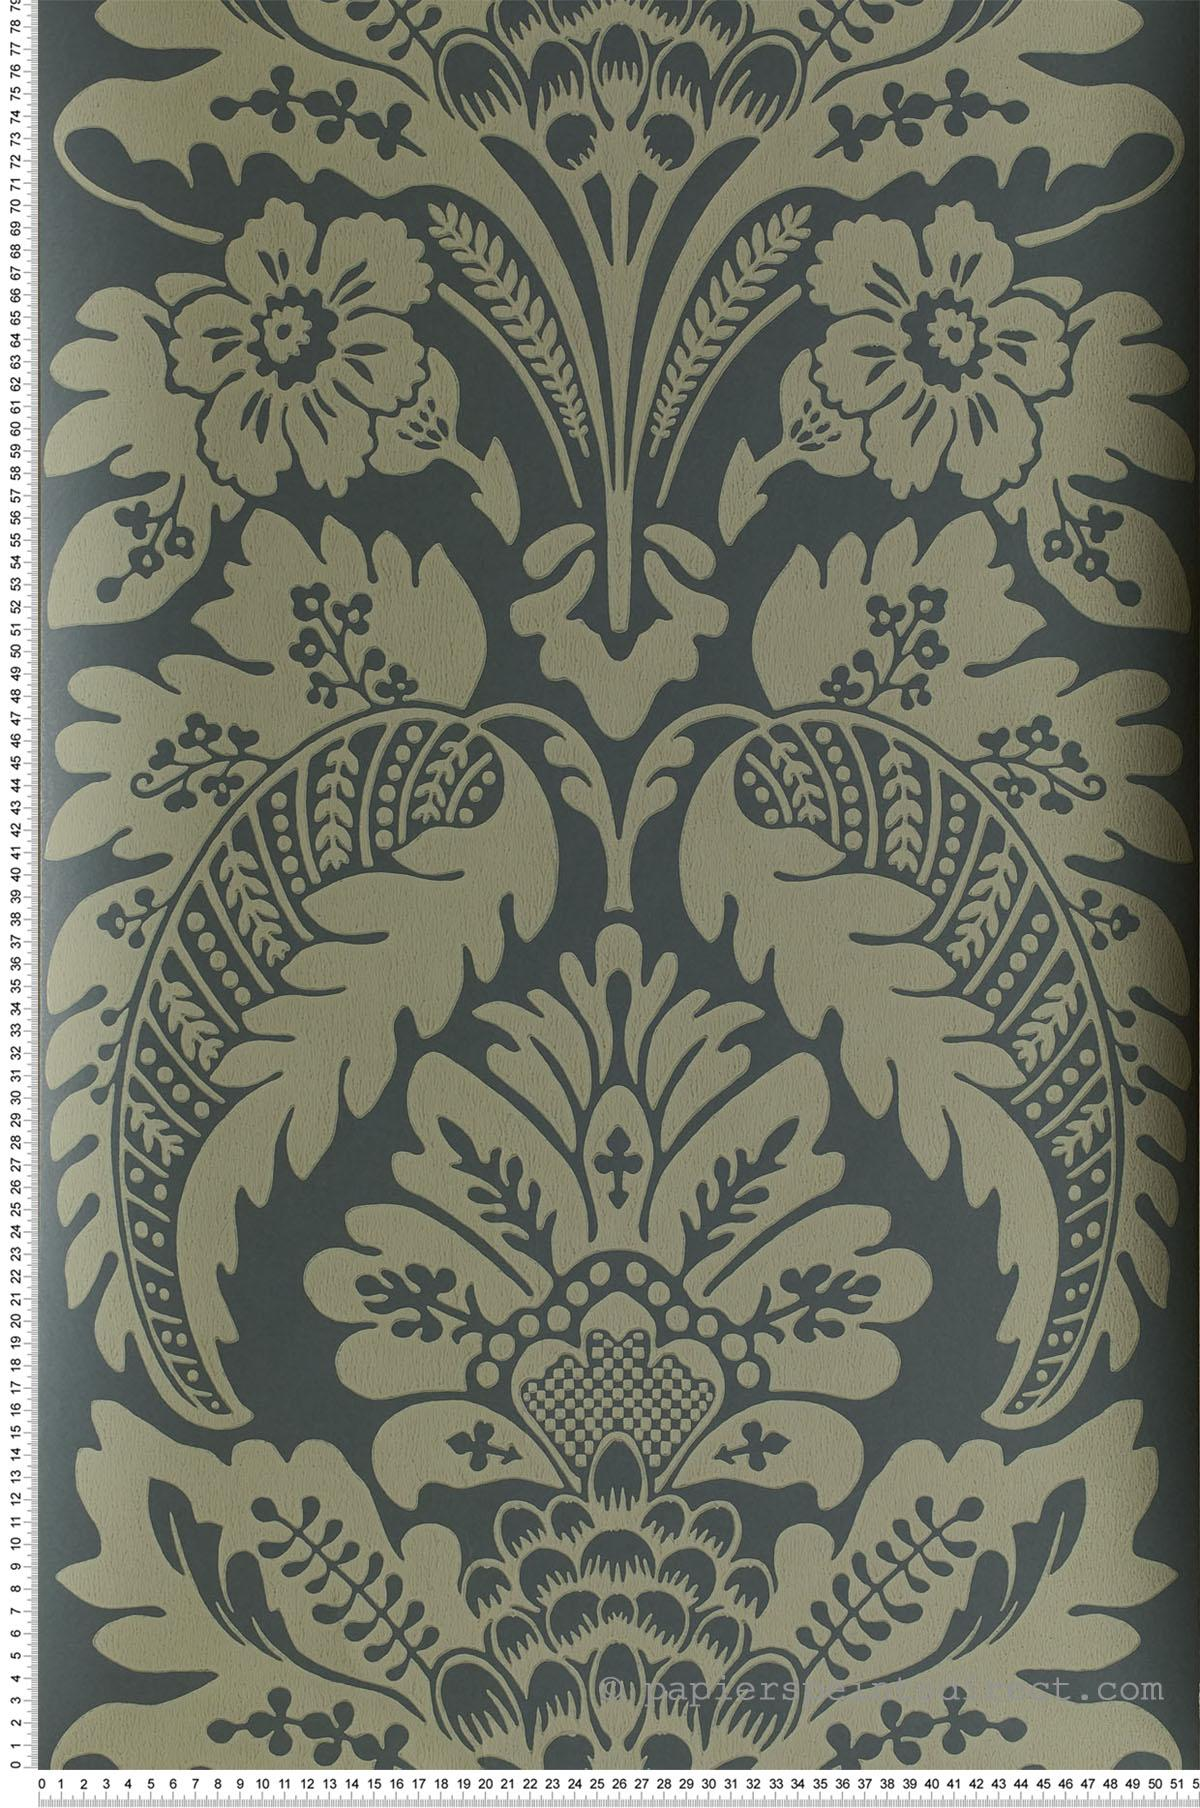 Papier peint Wilton Marle - Collection London Wallpapers V de Little Greene